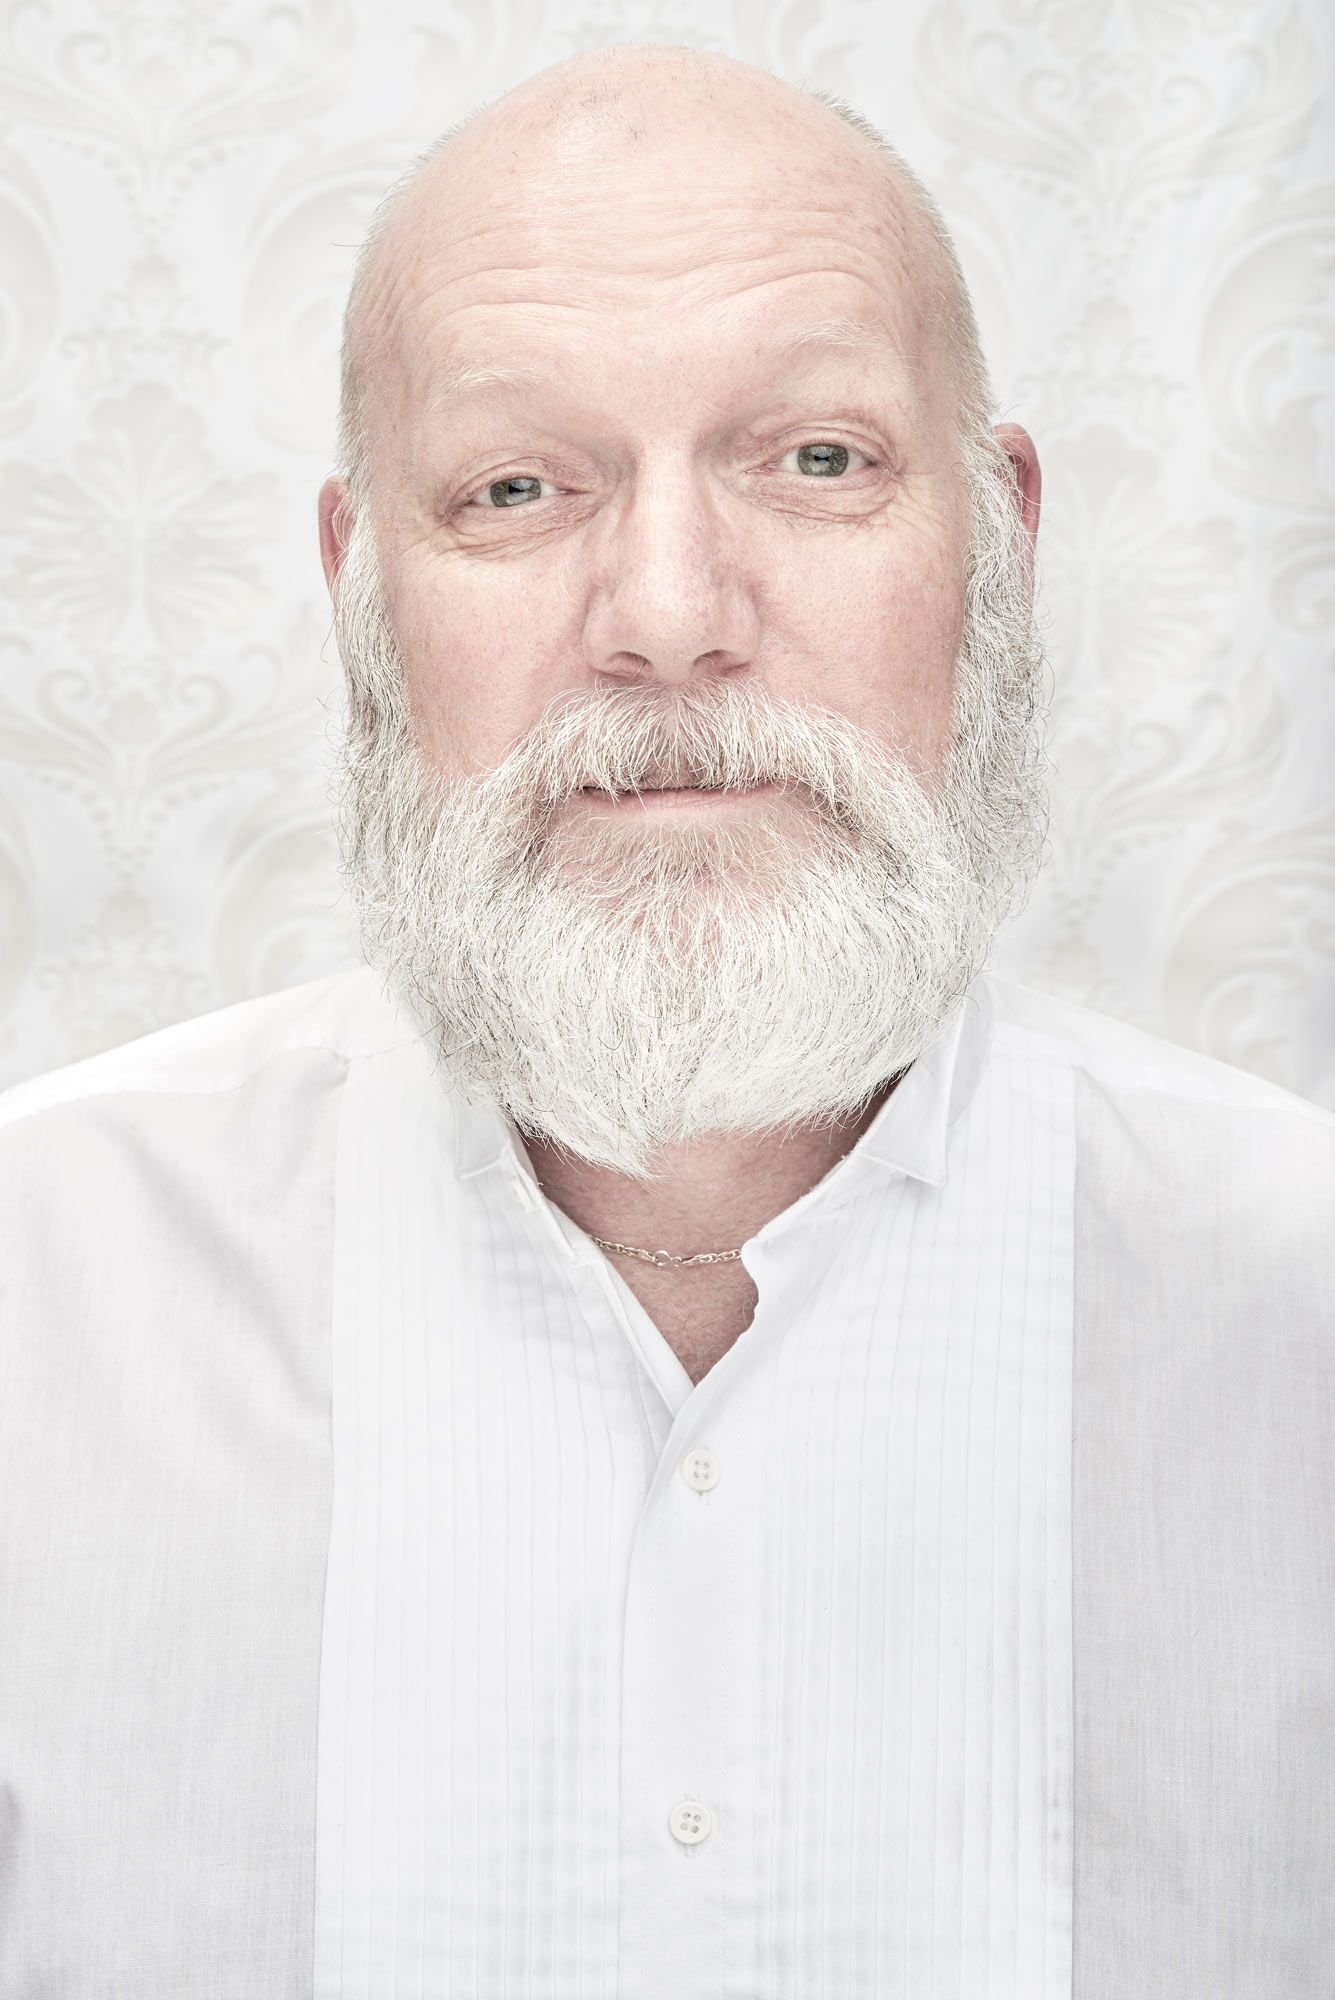 White on white portrait of man with beard